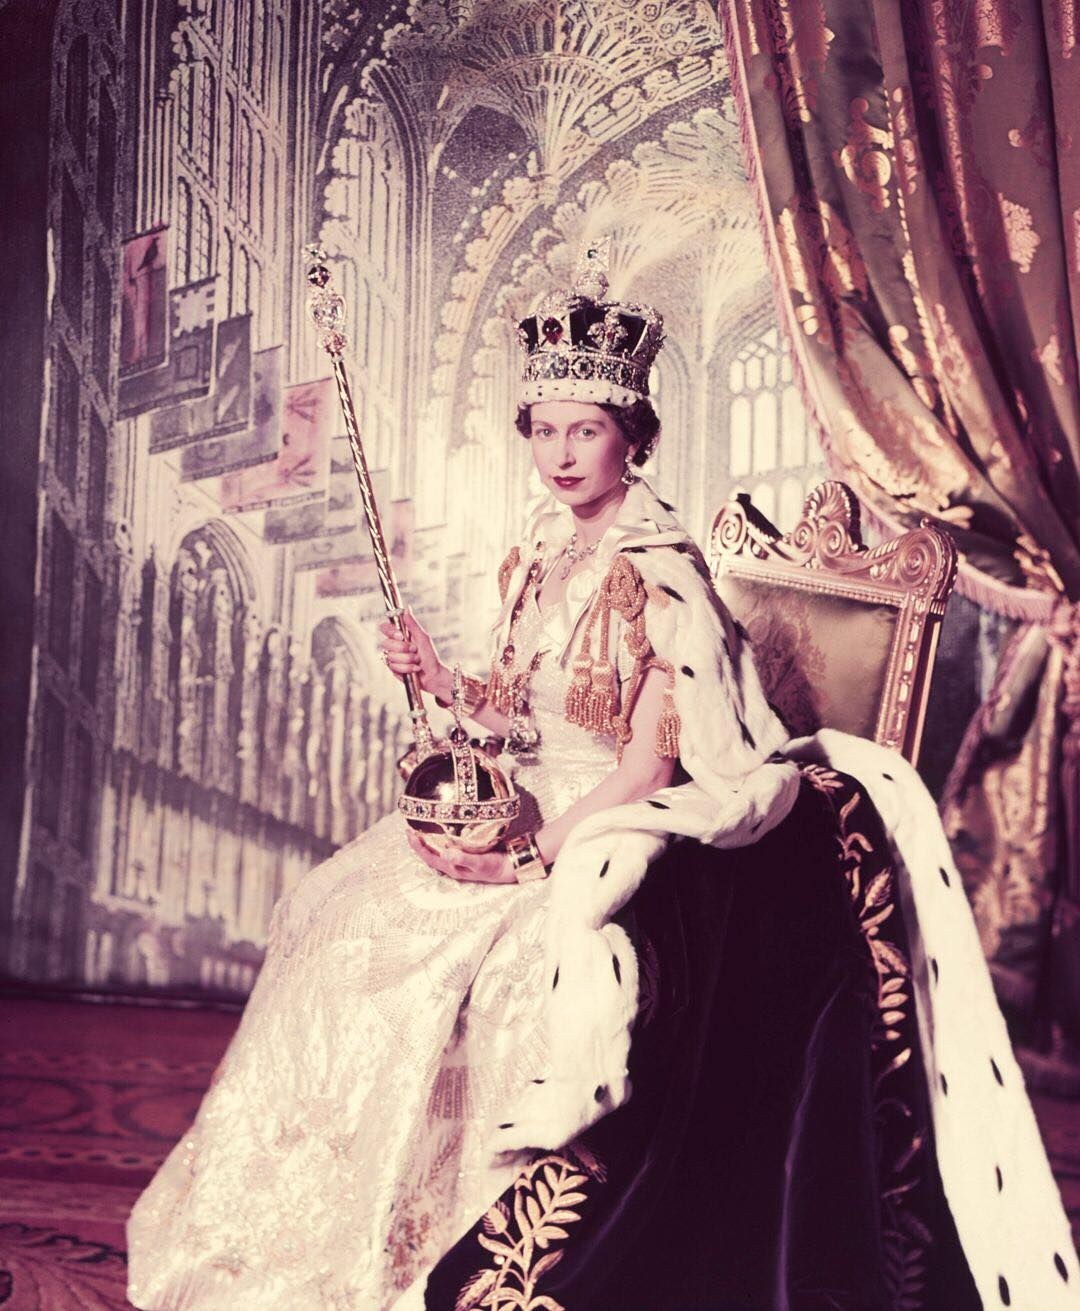 Today Marks The 65th Anniversary Of Queen Elizabeth S Coronation The Longest Reigning Monarch In Briti Elizabeth Ii Queen Elizabeth Queen Elizabeth Ii Fashion